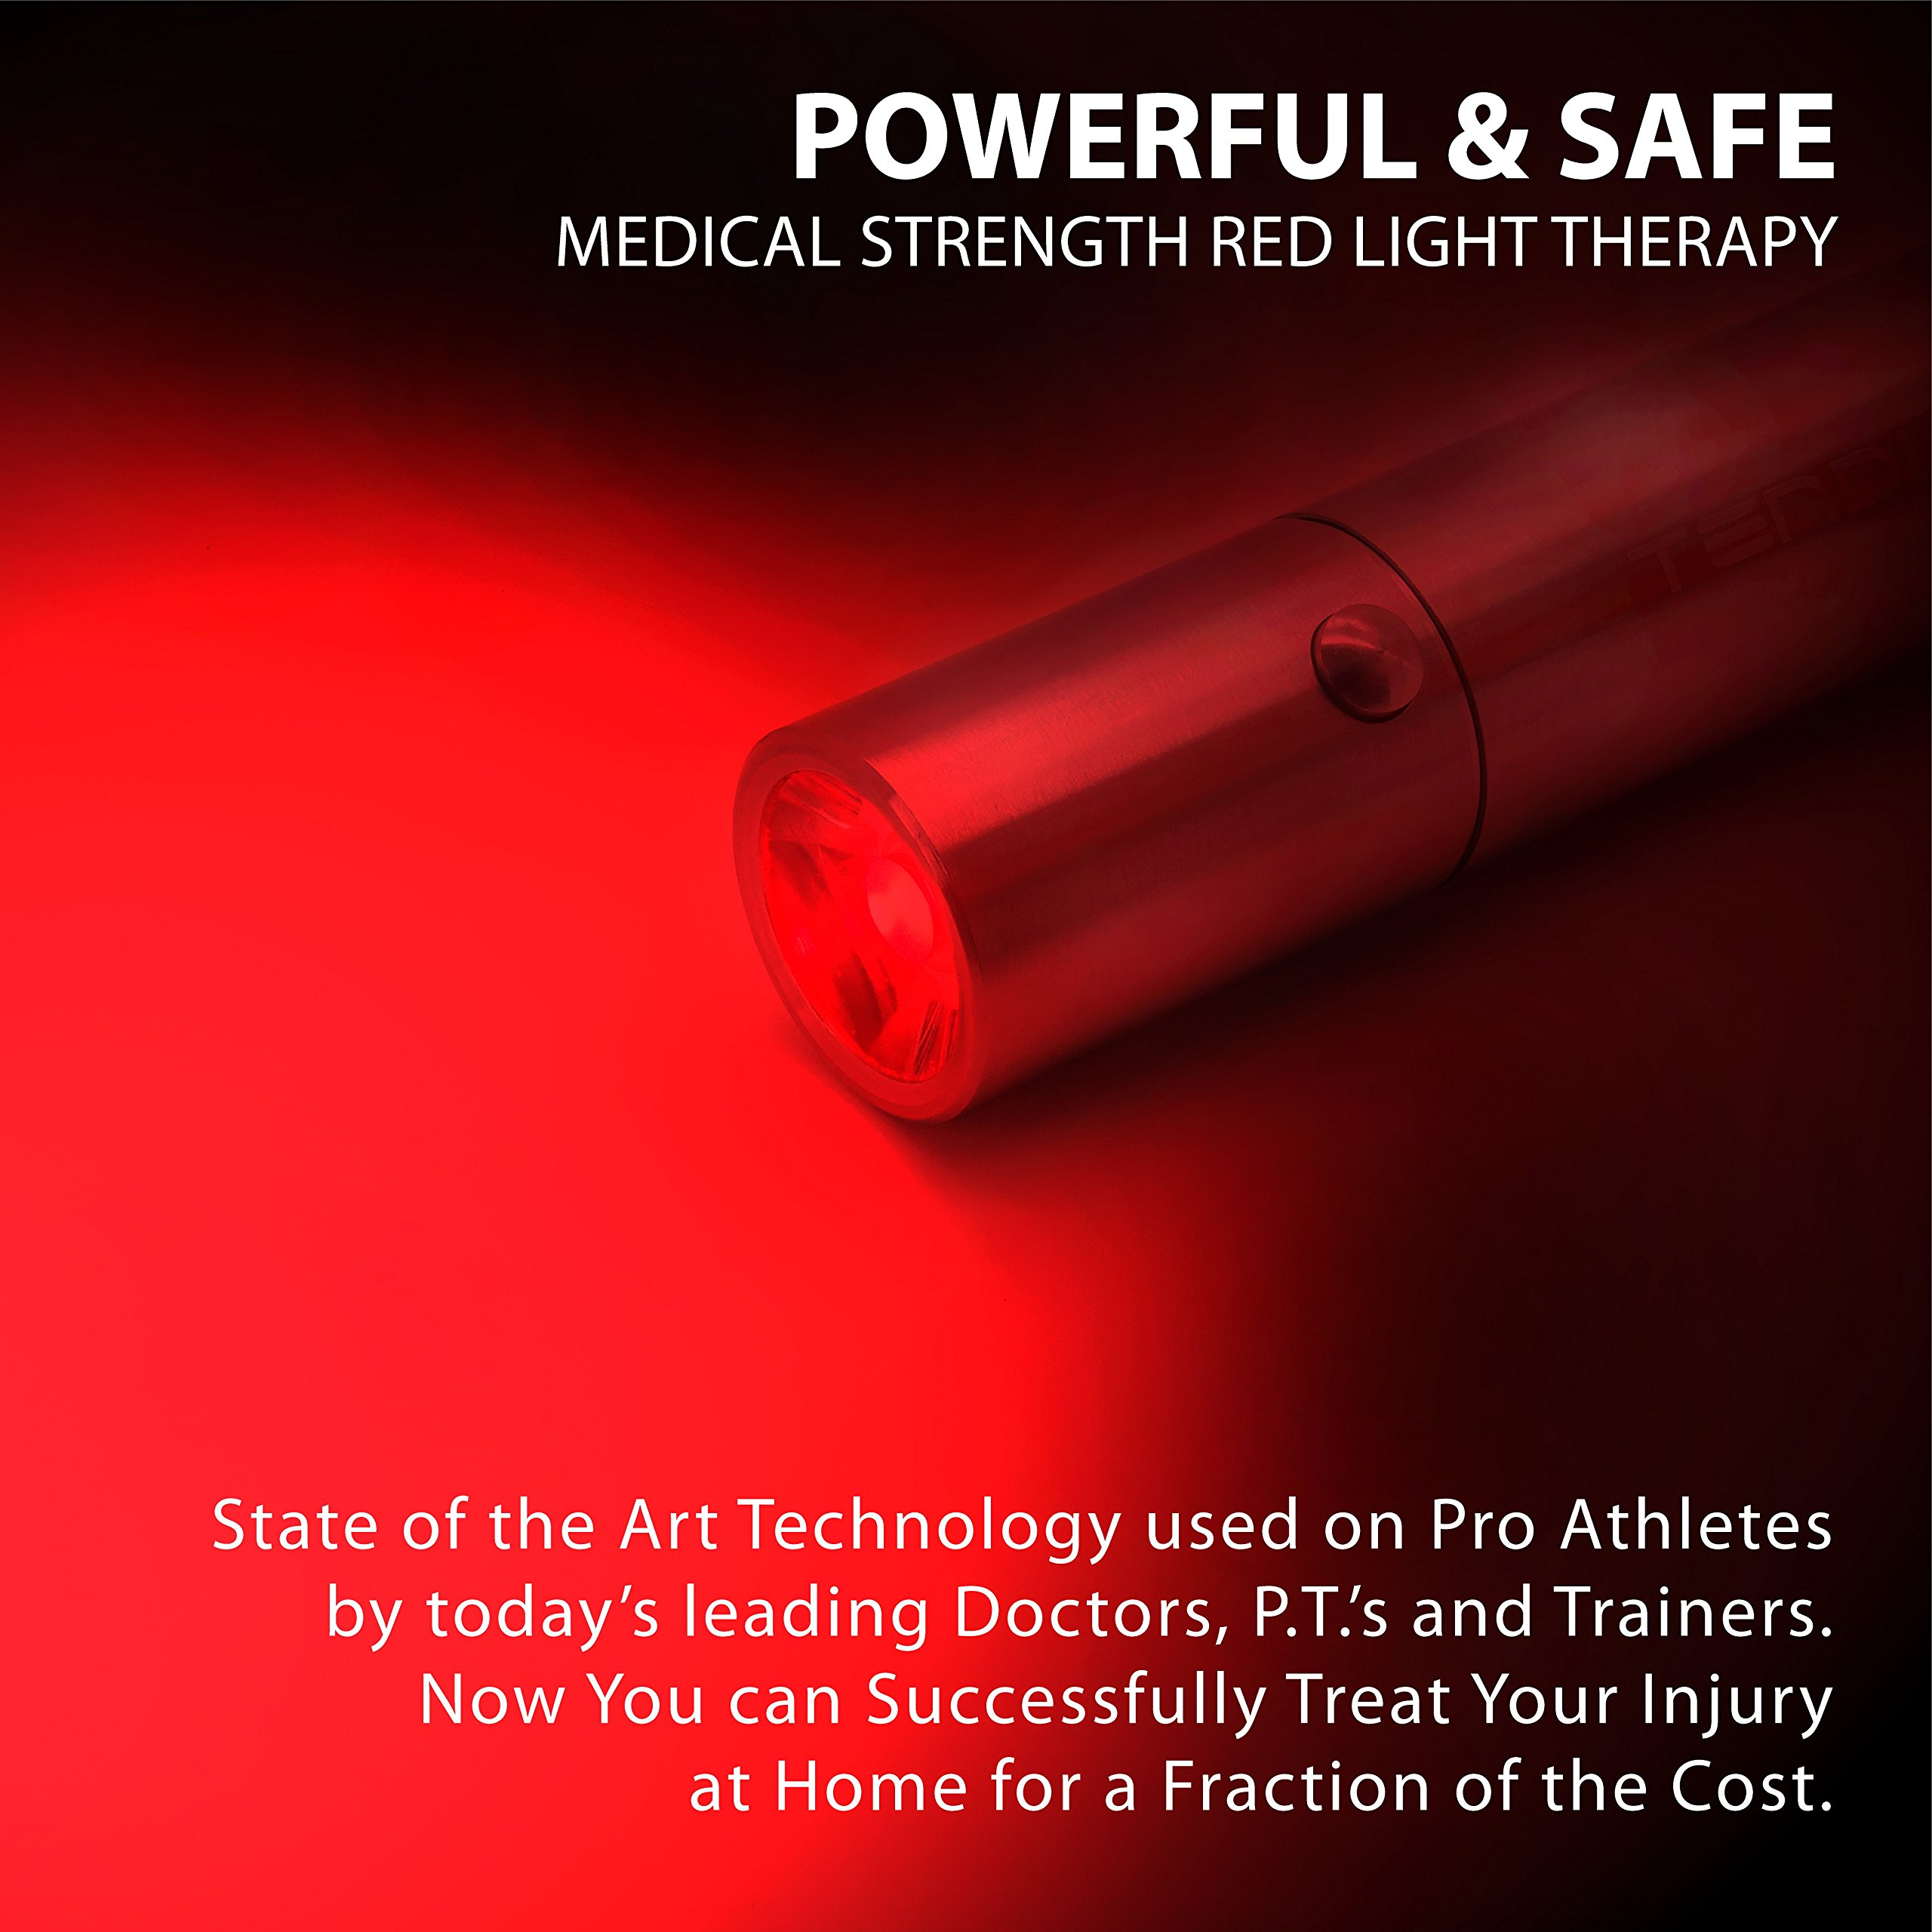 Pain Relief Therapy TENDLITE® FDA Cleared Red LED Light Device Joint & Muscle Reliever MEDICAL GRADE by TENDLITE® (Image #4)